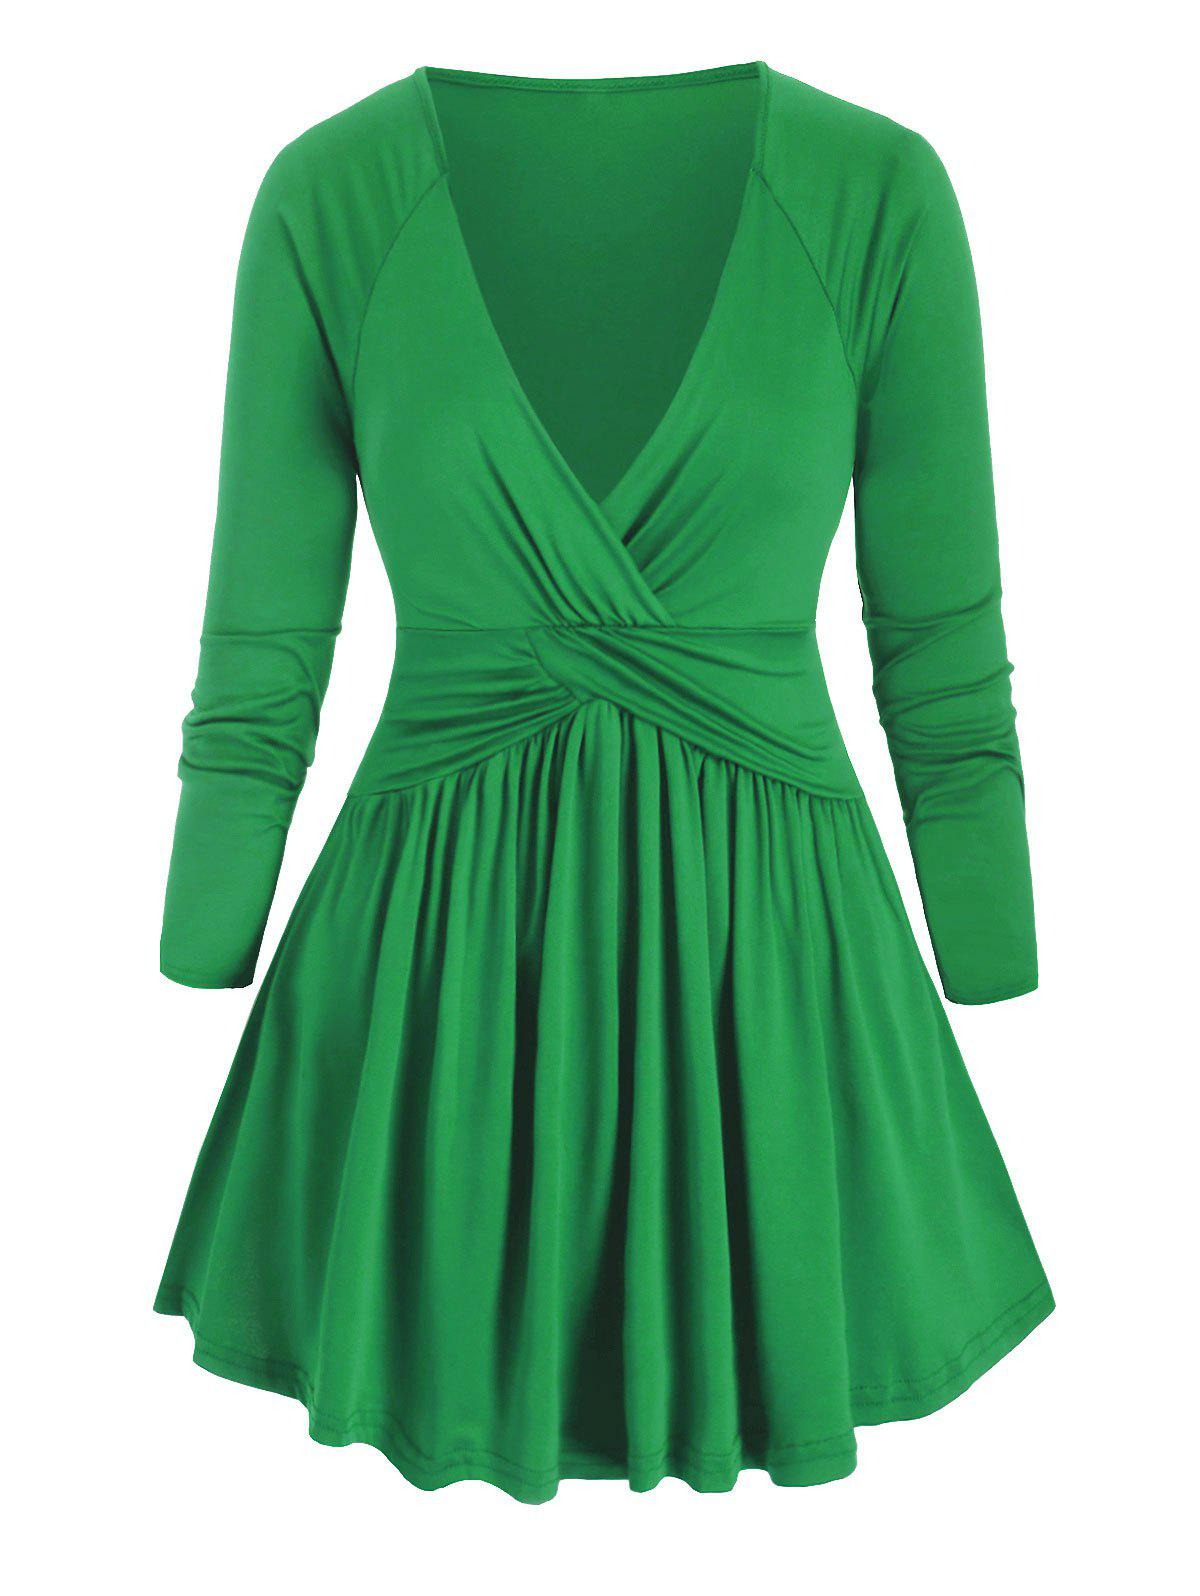 Cross Front Ruched Long Sleeve Plus Size Top - CLOVER GREEN 5X